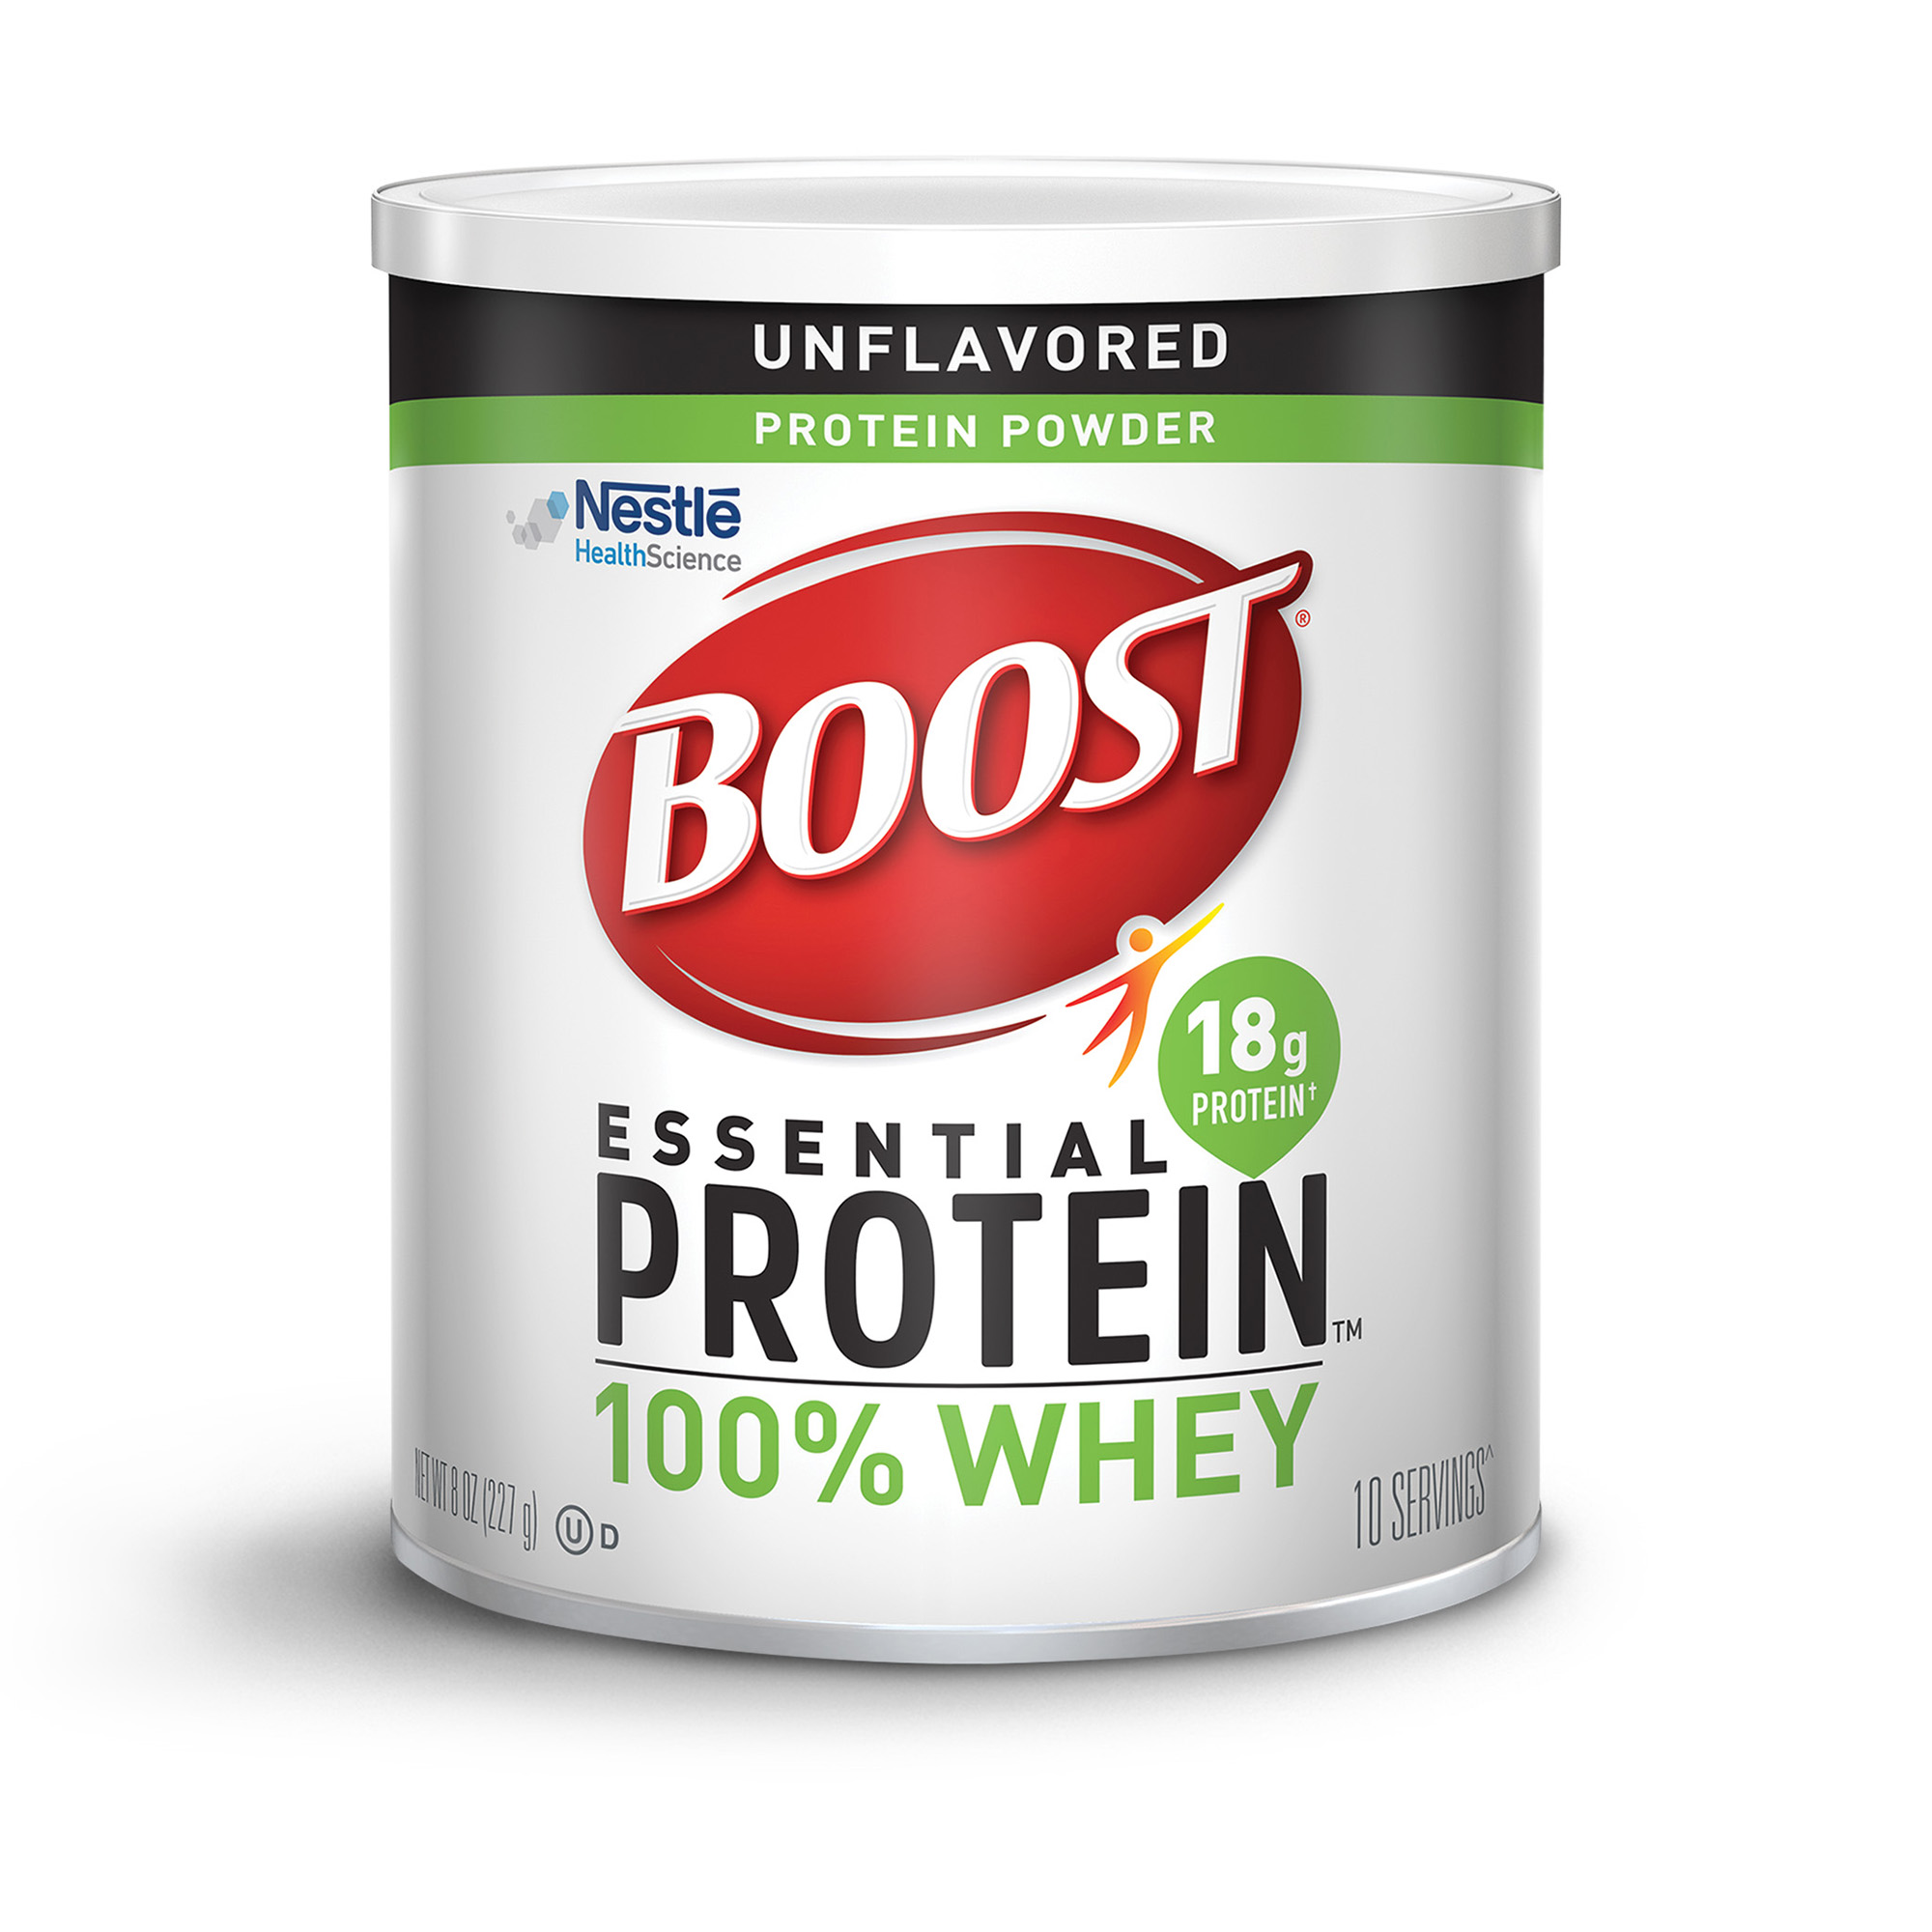 Boost Essential Protein Powder Unflavored, 8 oz Canister